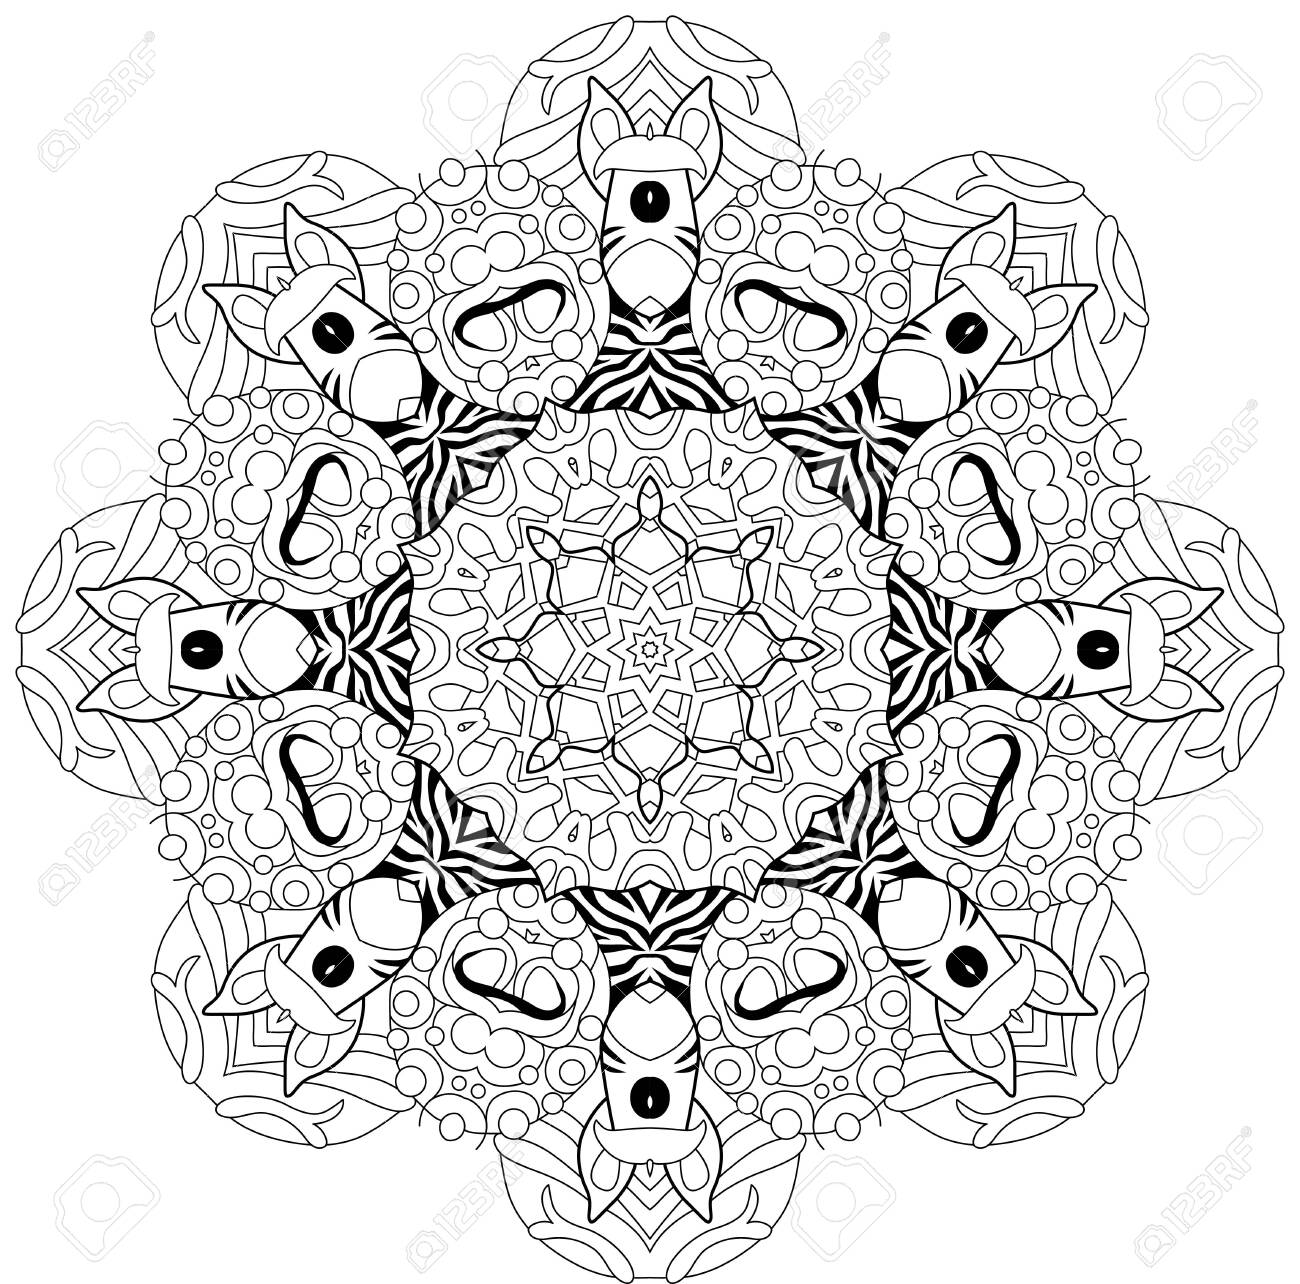 Vector Adult Coloring Book Textures. Hand-painted art design. Adult anti-stress coloring page. Black and white hand drawn illustration for coloring book. - 149055652